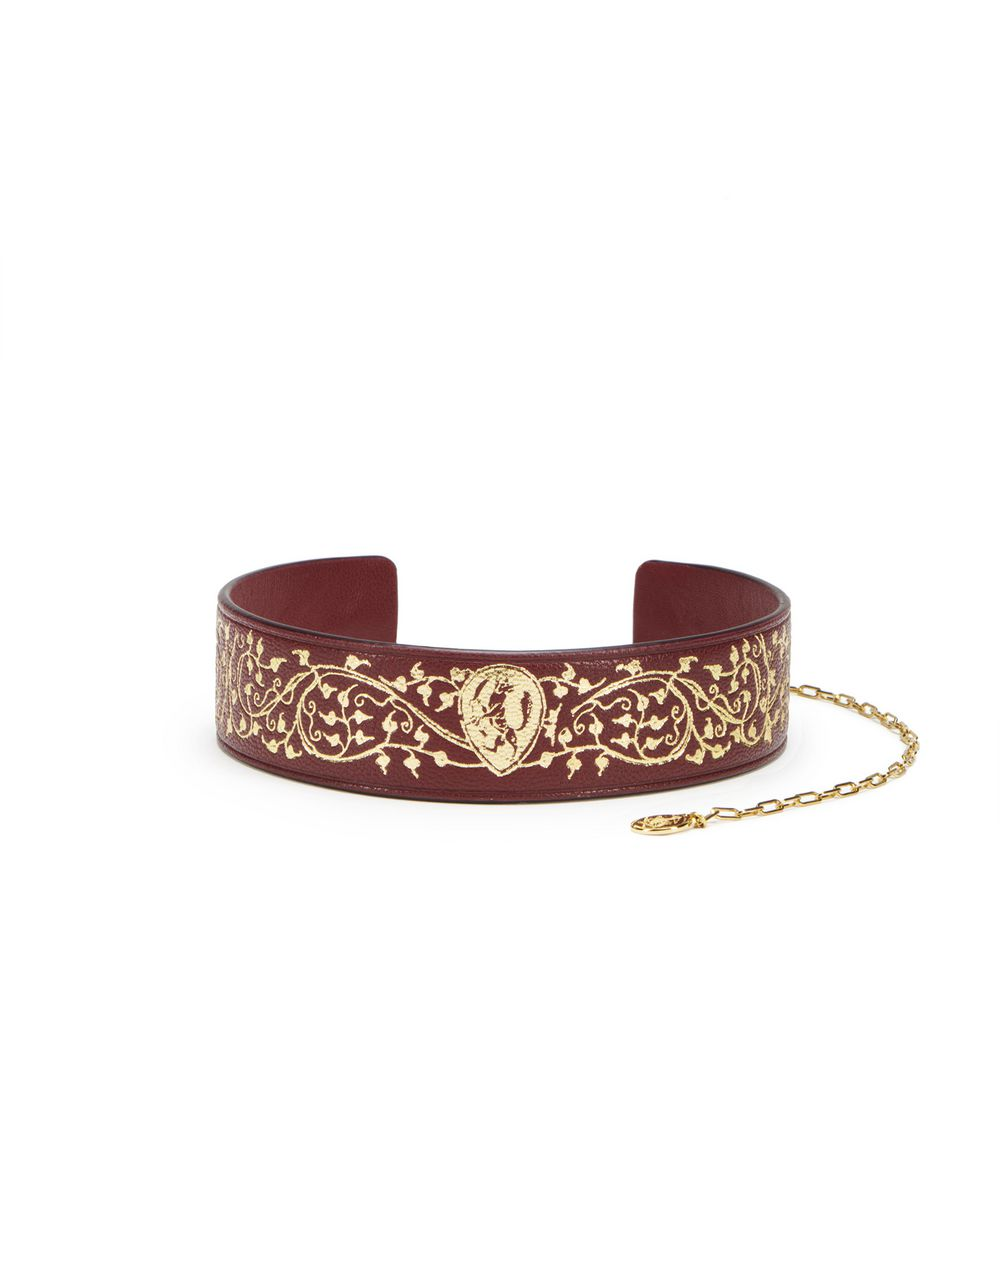 PRINTED LEATHER CHOKER - Lanvin